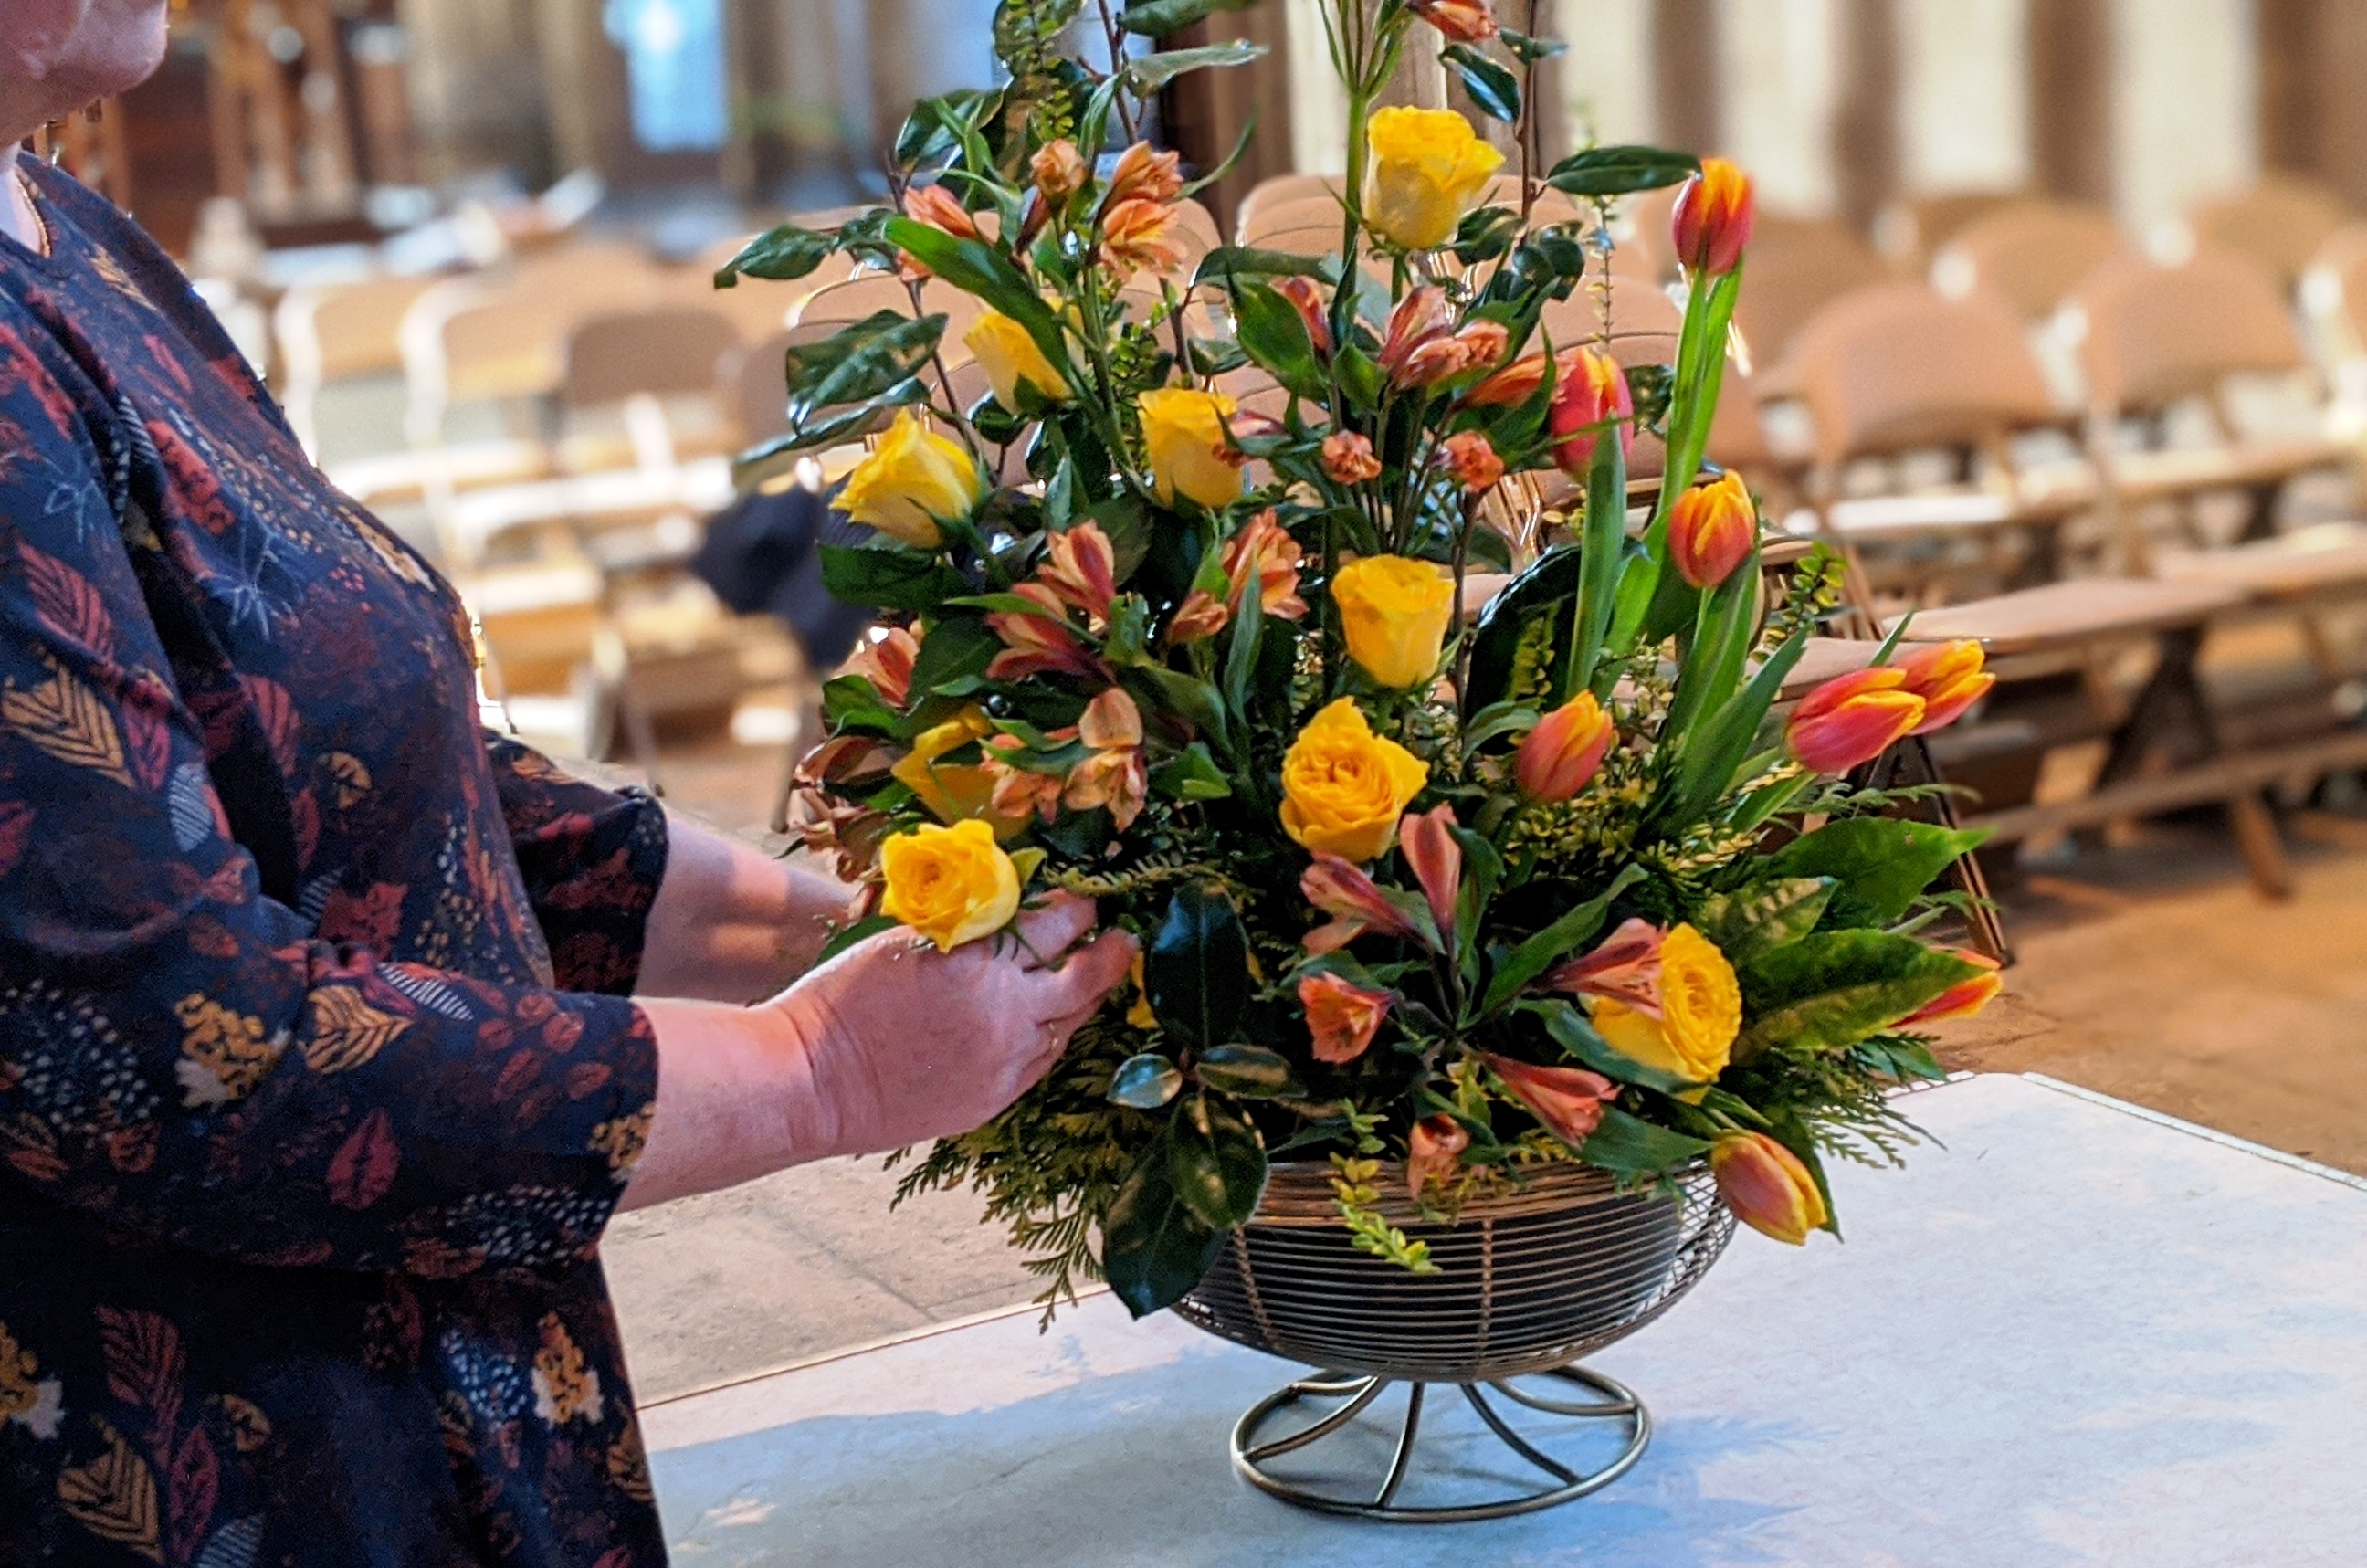 Flower arranging in the Cathedral